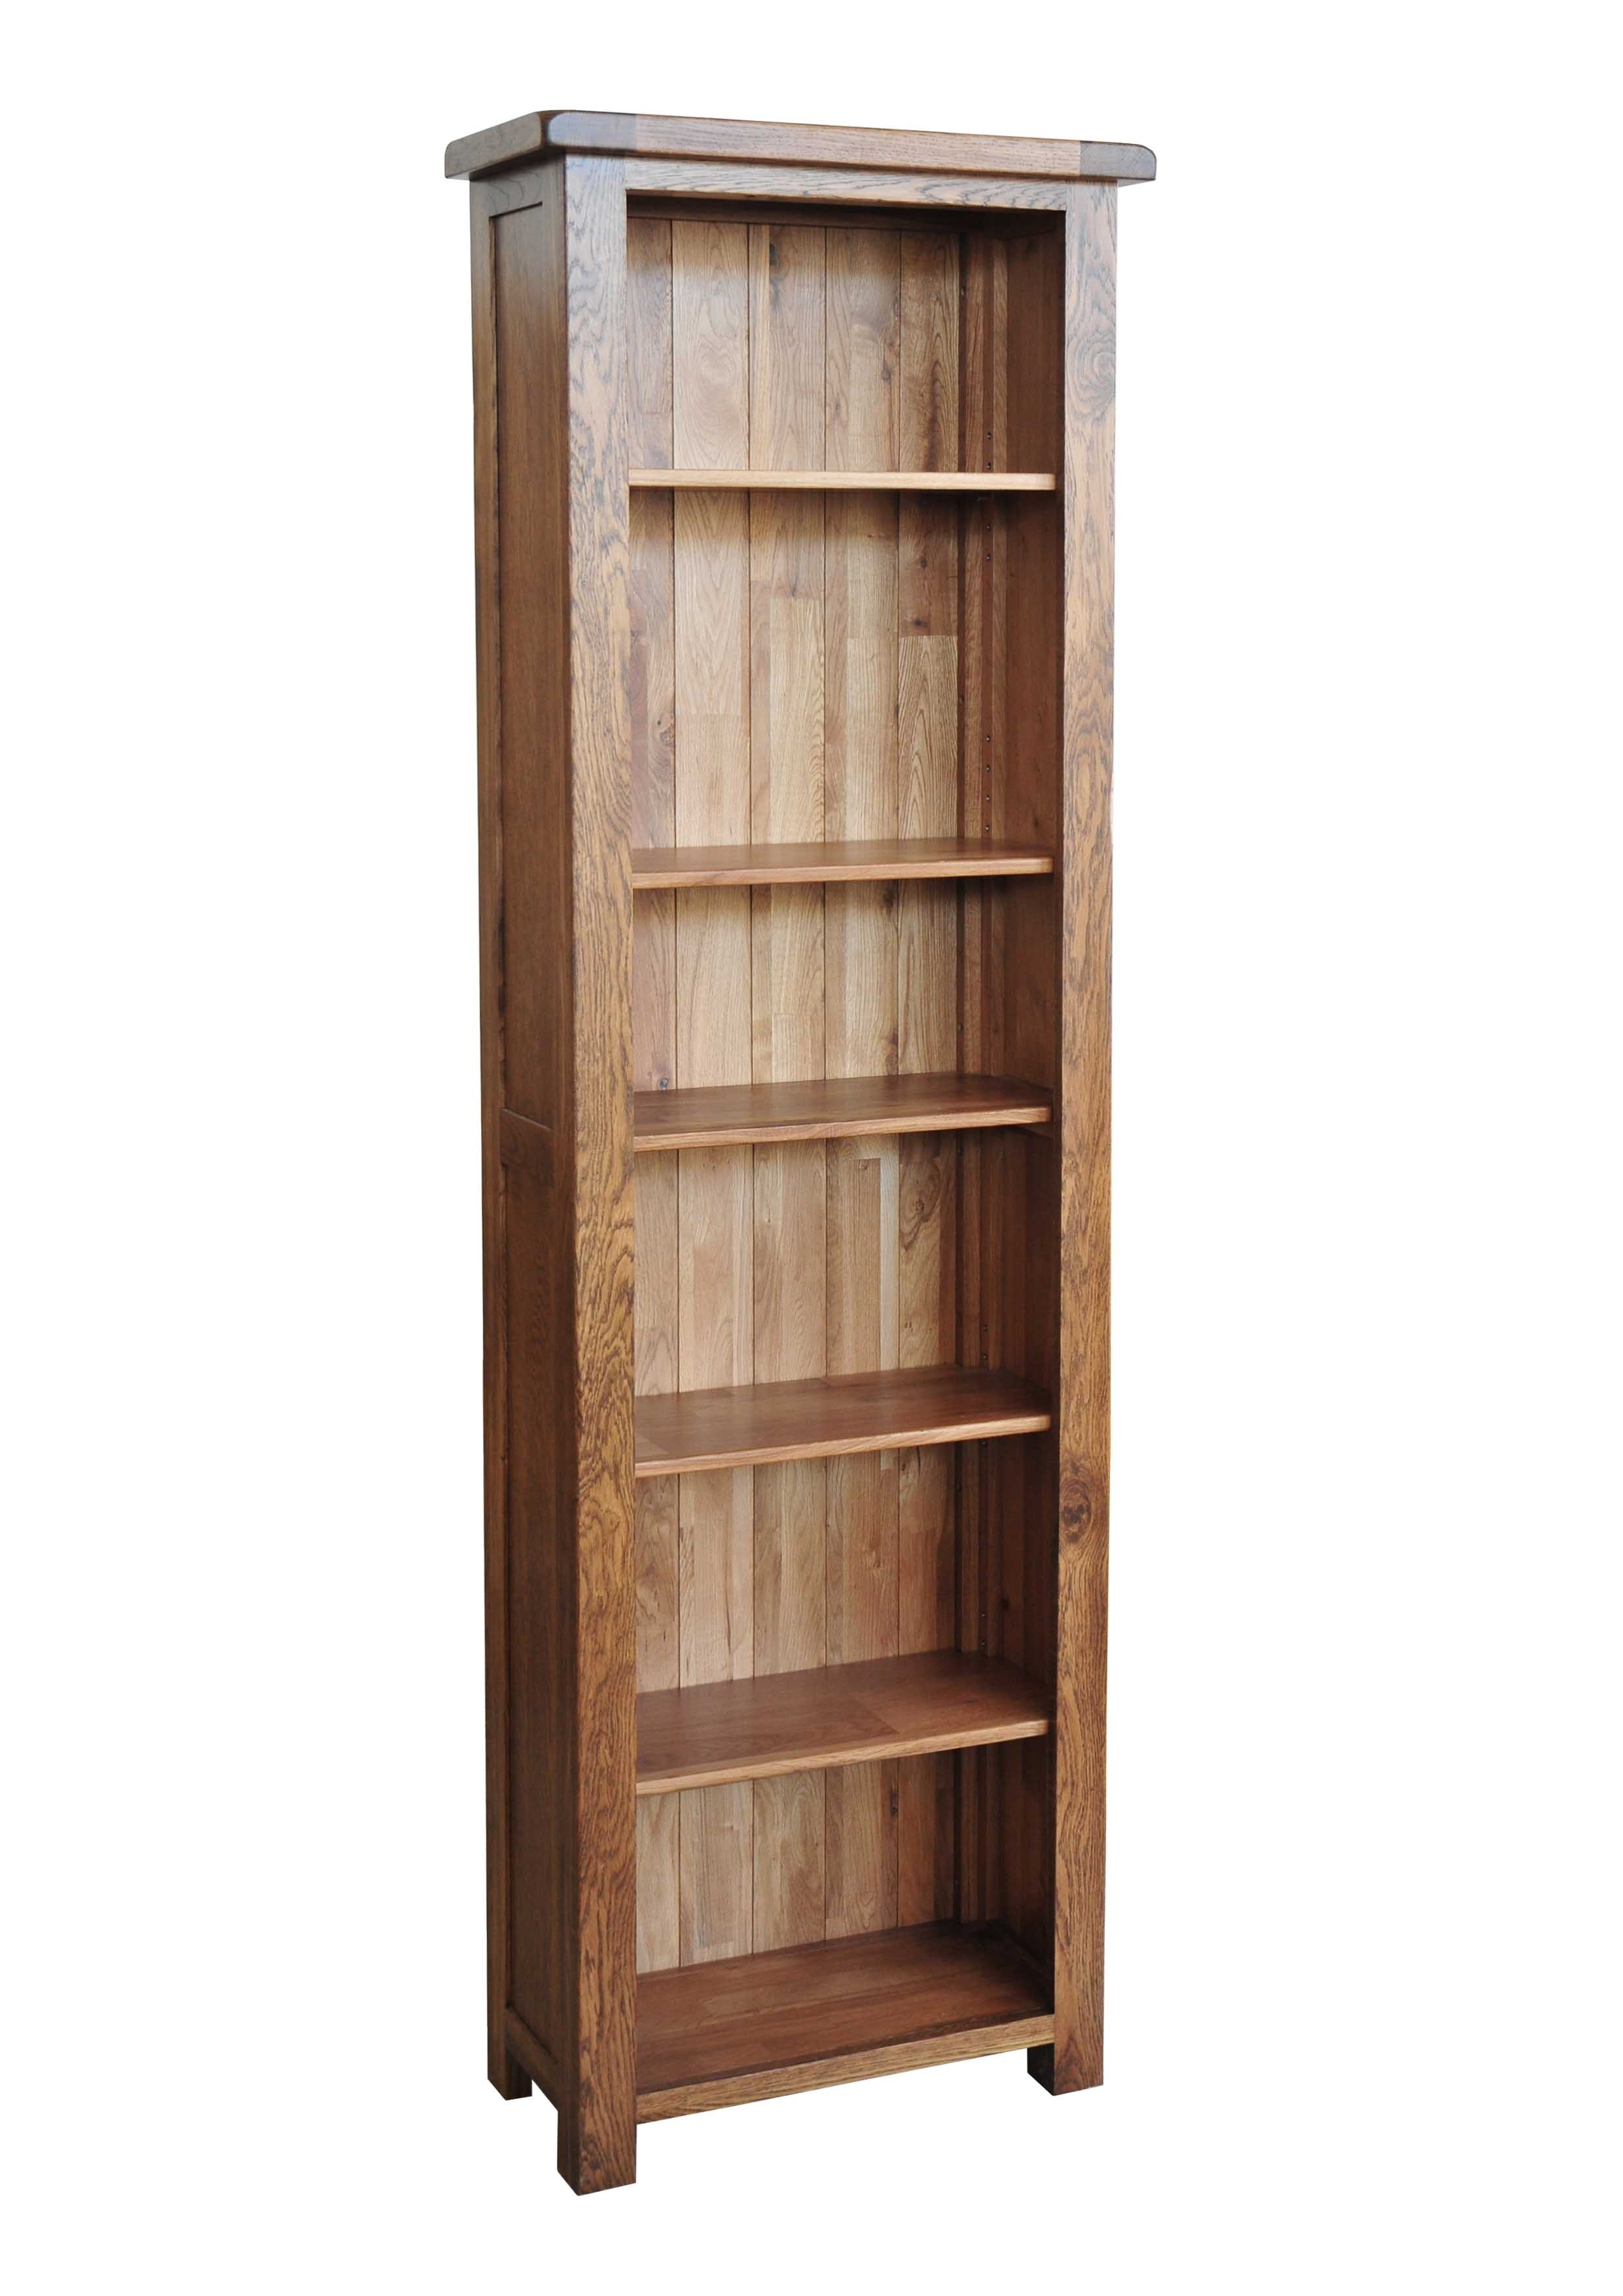 Best And Newest Beautiful Narrow Wood Bookcase Images Design Tall Solid Regarding Thin Bookcases (Gallery 5 of 15)